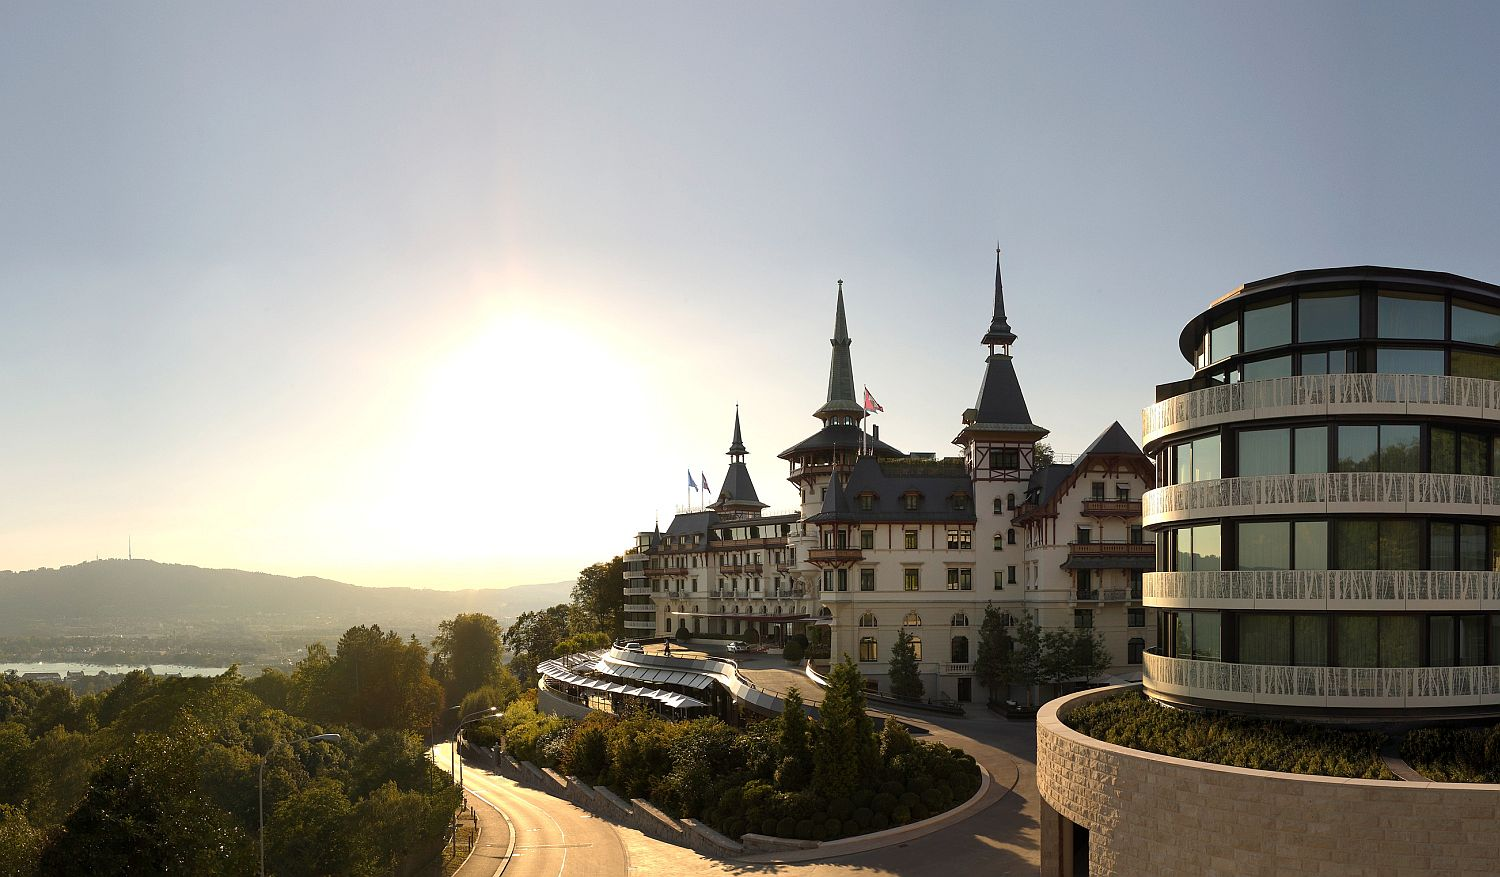 Stunning and spectacular image of The Dolder Grand in Zurich